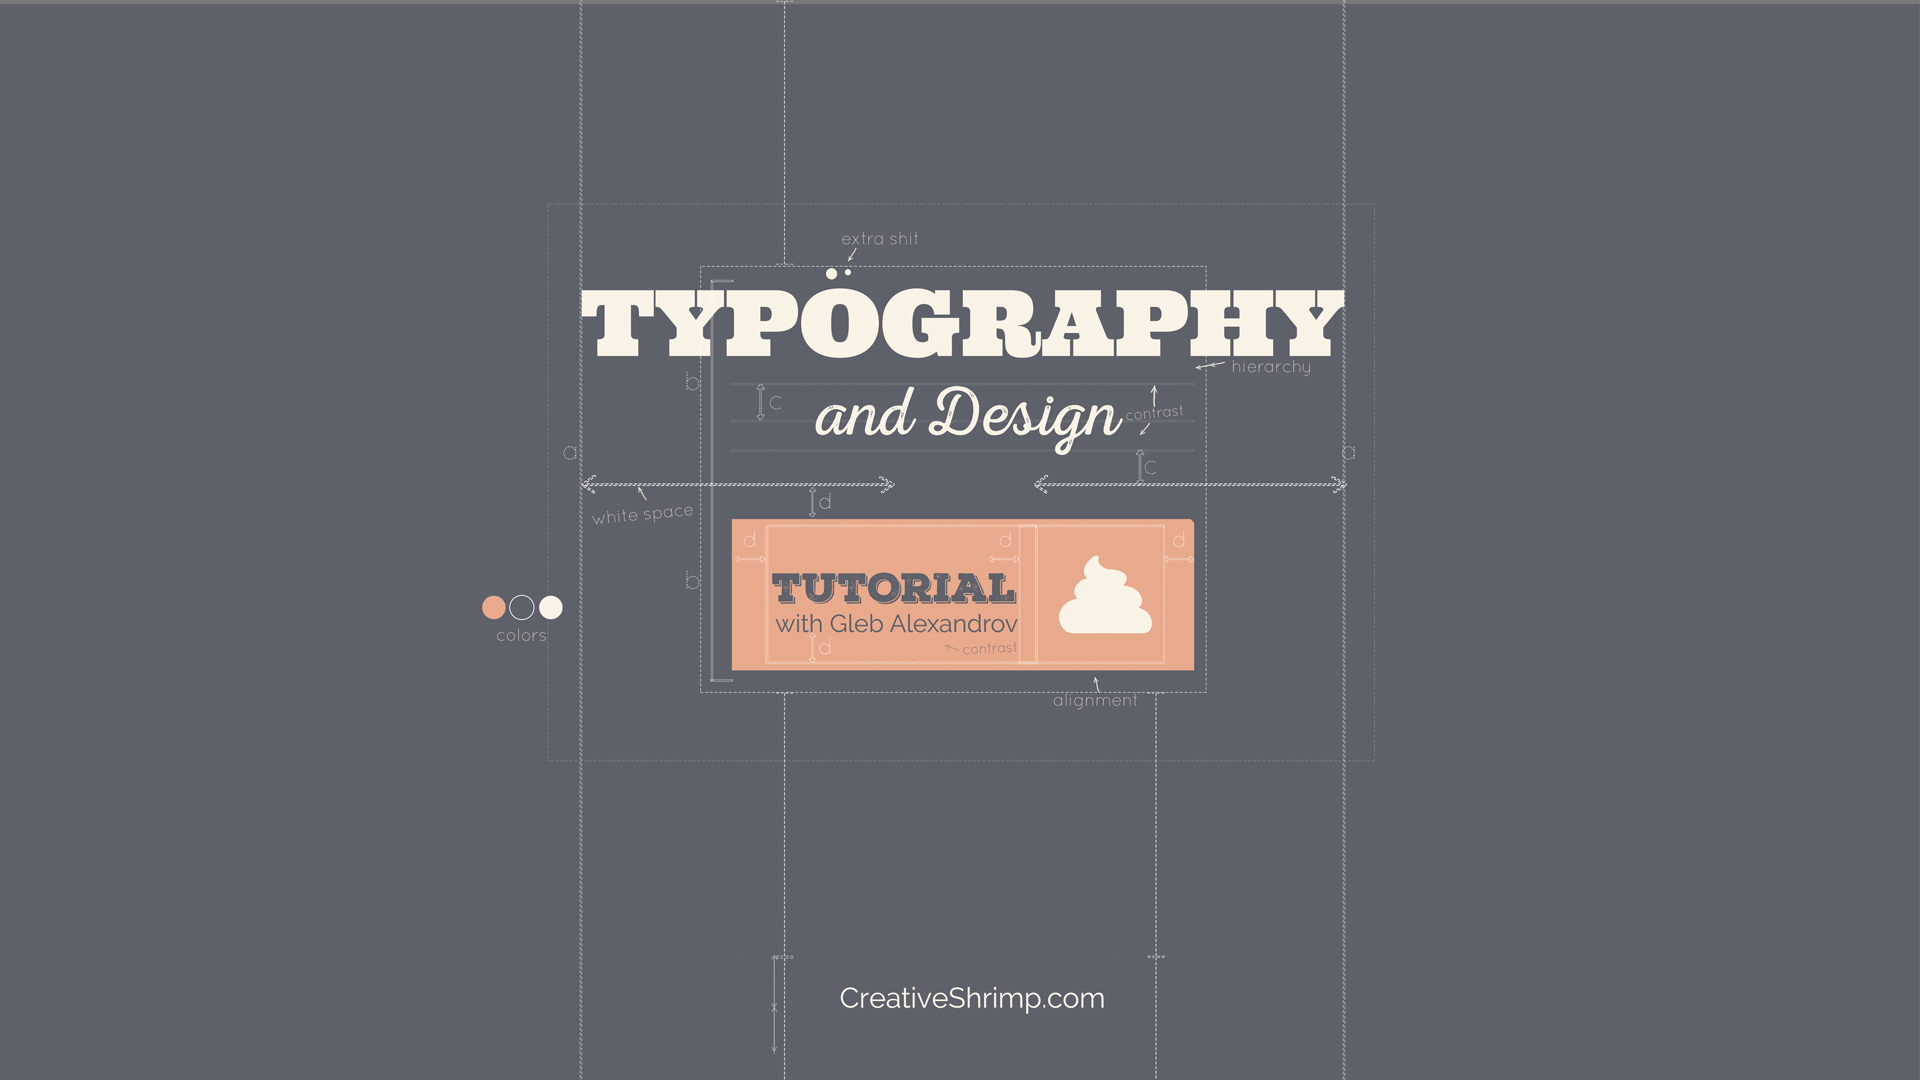 Non blender 10 typography and design tips for beginners non blender 10 typography and design tips for beginners baditri Image collections